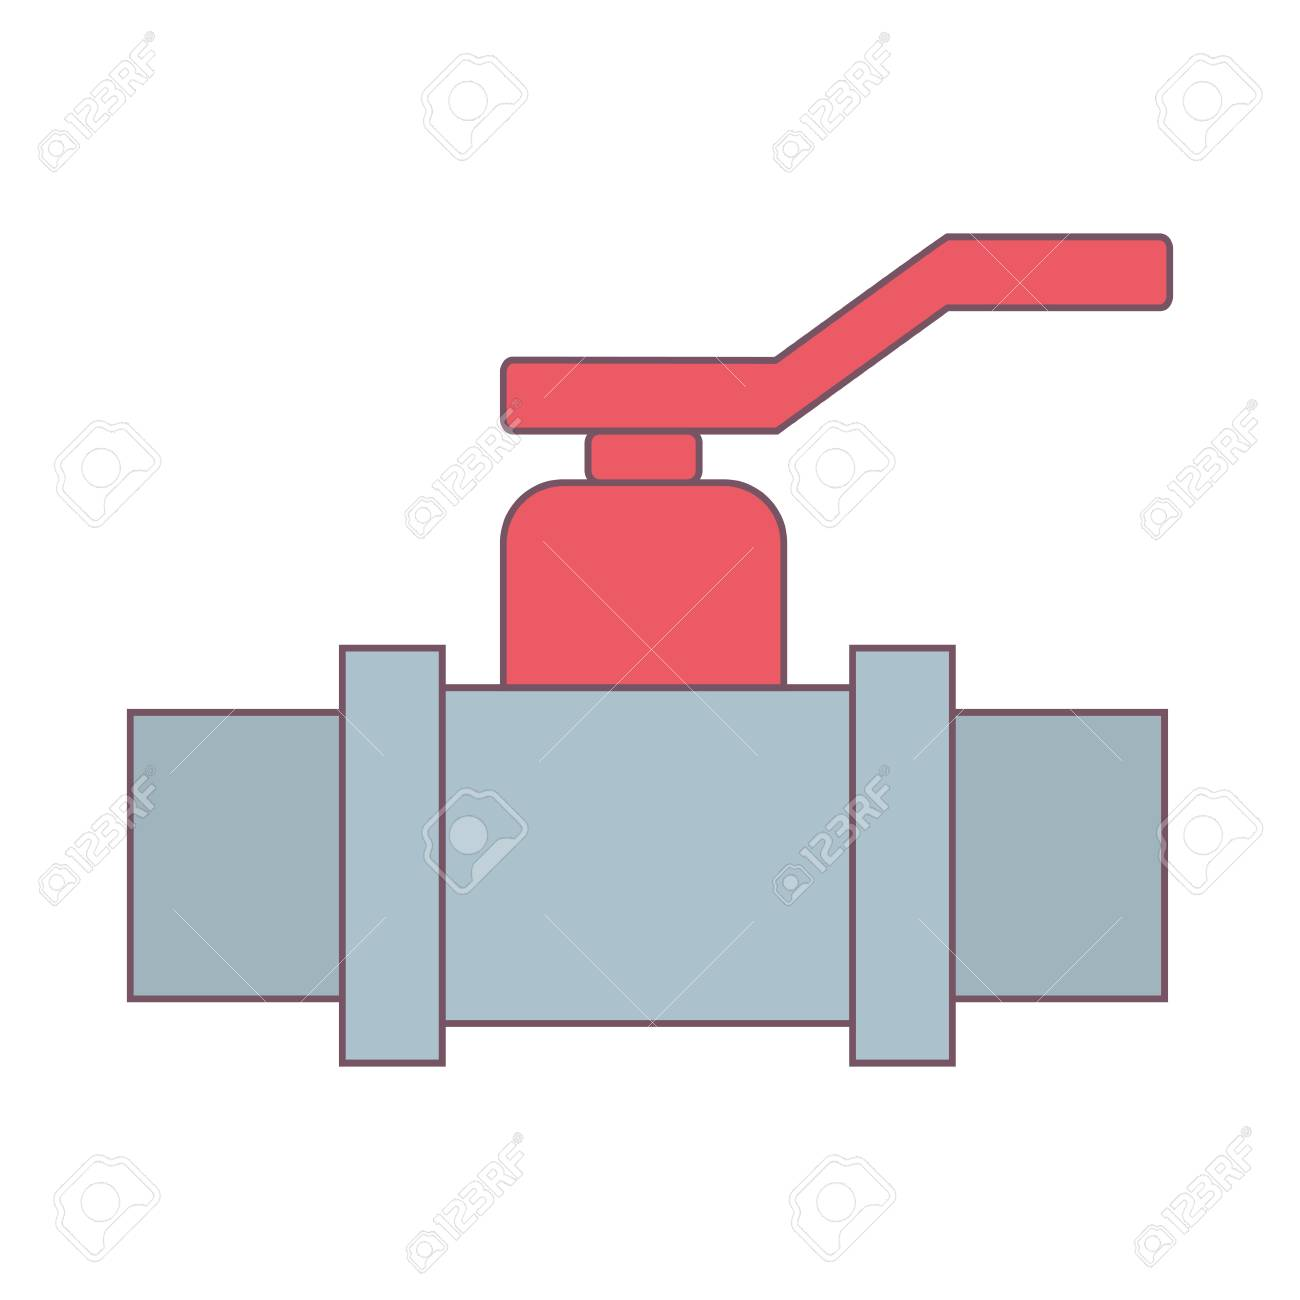 Water Pipe Valve Icon Over White Background Vector Illustration ...